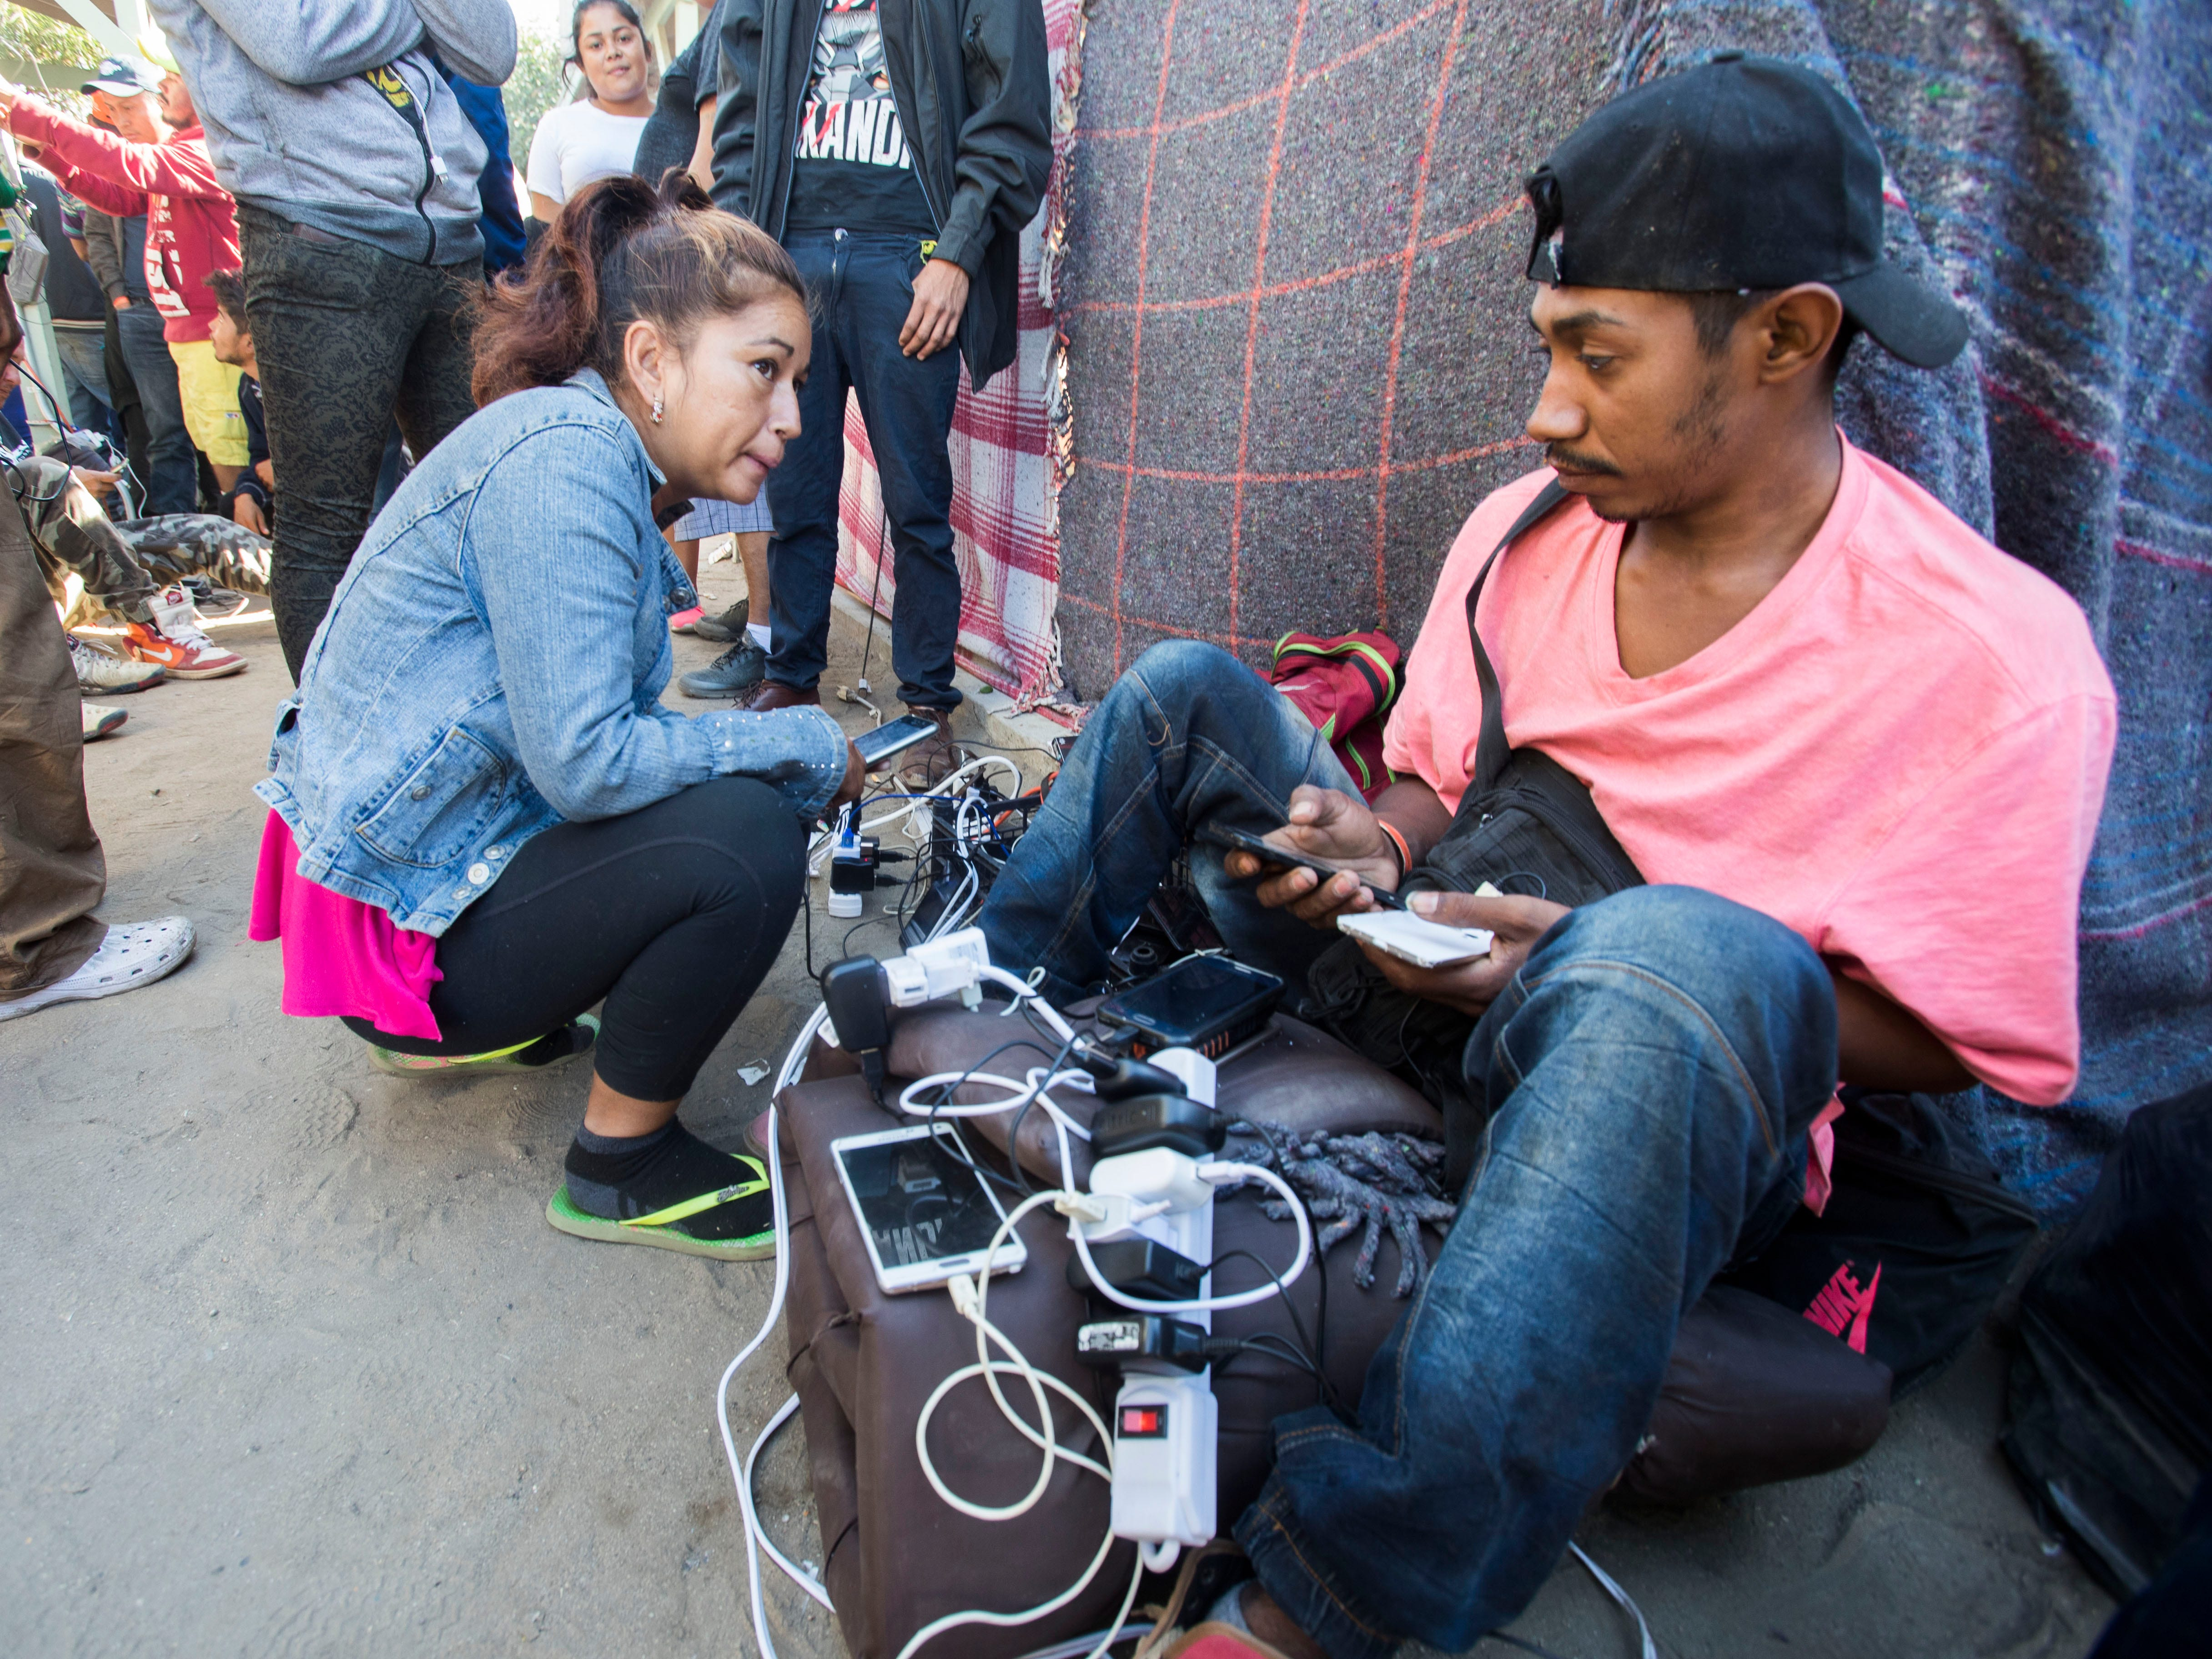 Migrants charge their phone batteries at the Benito Juarez sports complex shelter, which is housing more than 5000 migrants in the city of Tijuana, Mexico on Nov. 27, 2018.